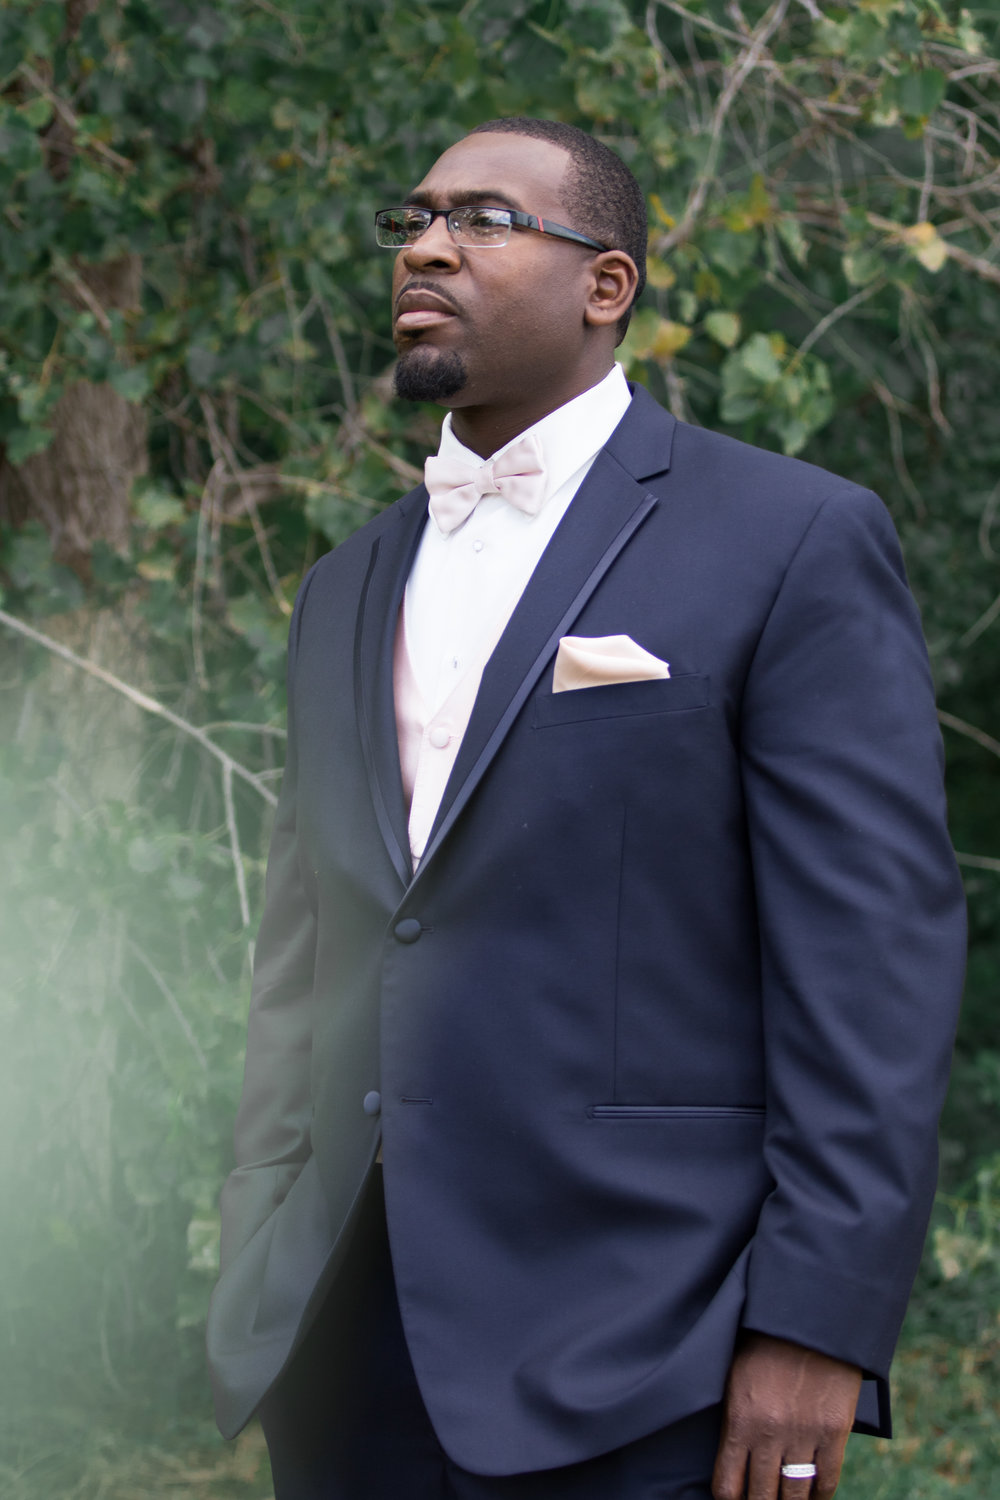 Groom waiting for his bride, first look, navy suit, light pink vest, bow tie and pocket square | Tigerlily Photography